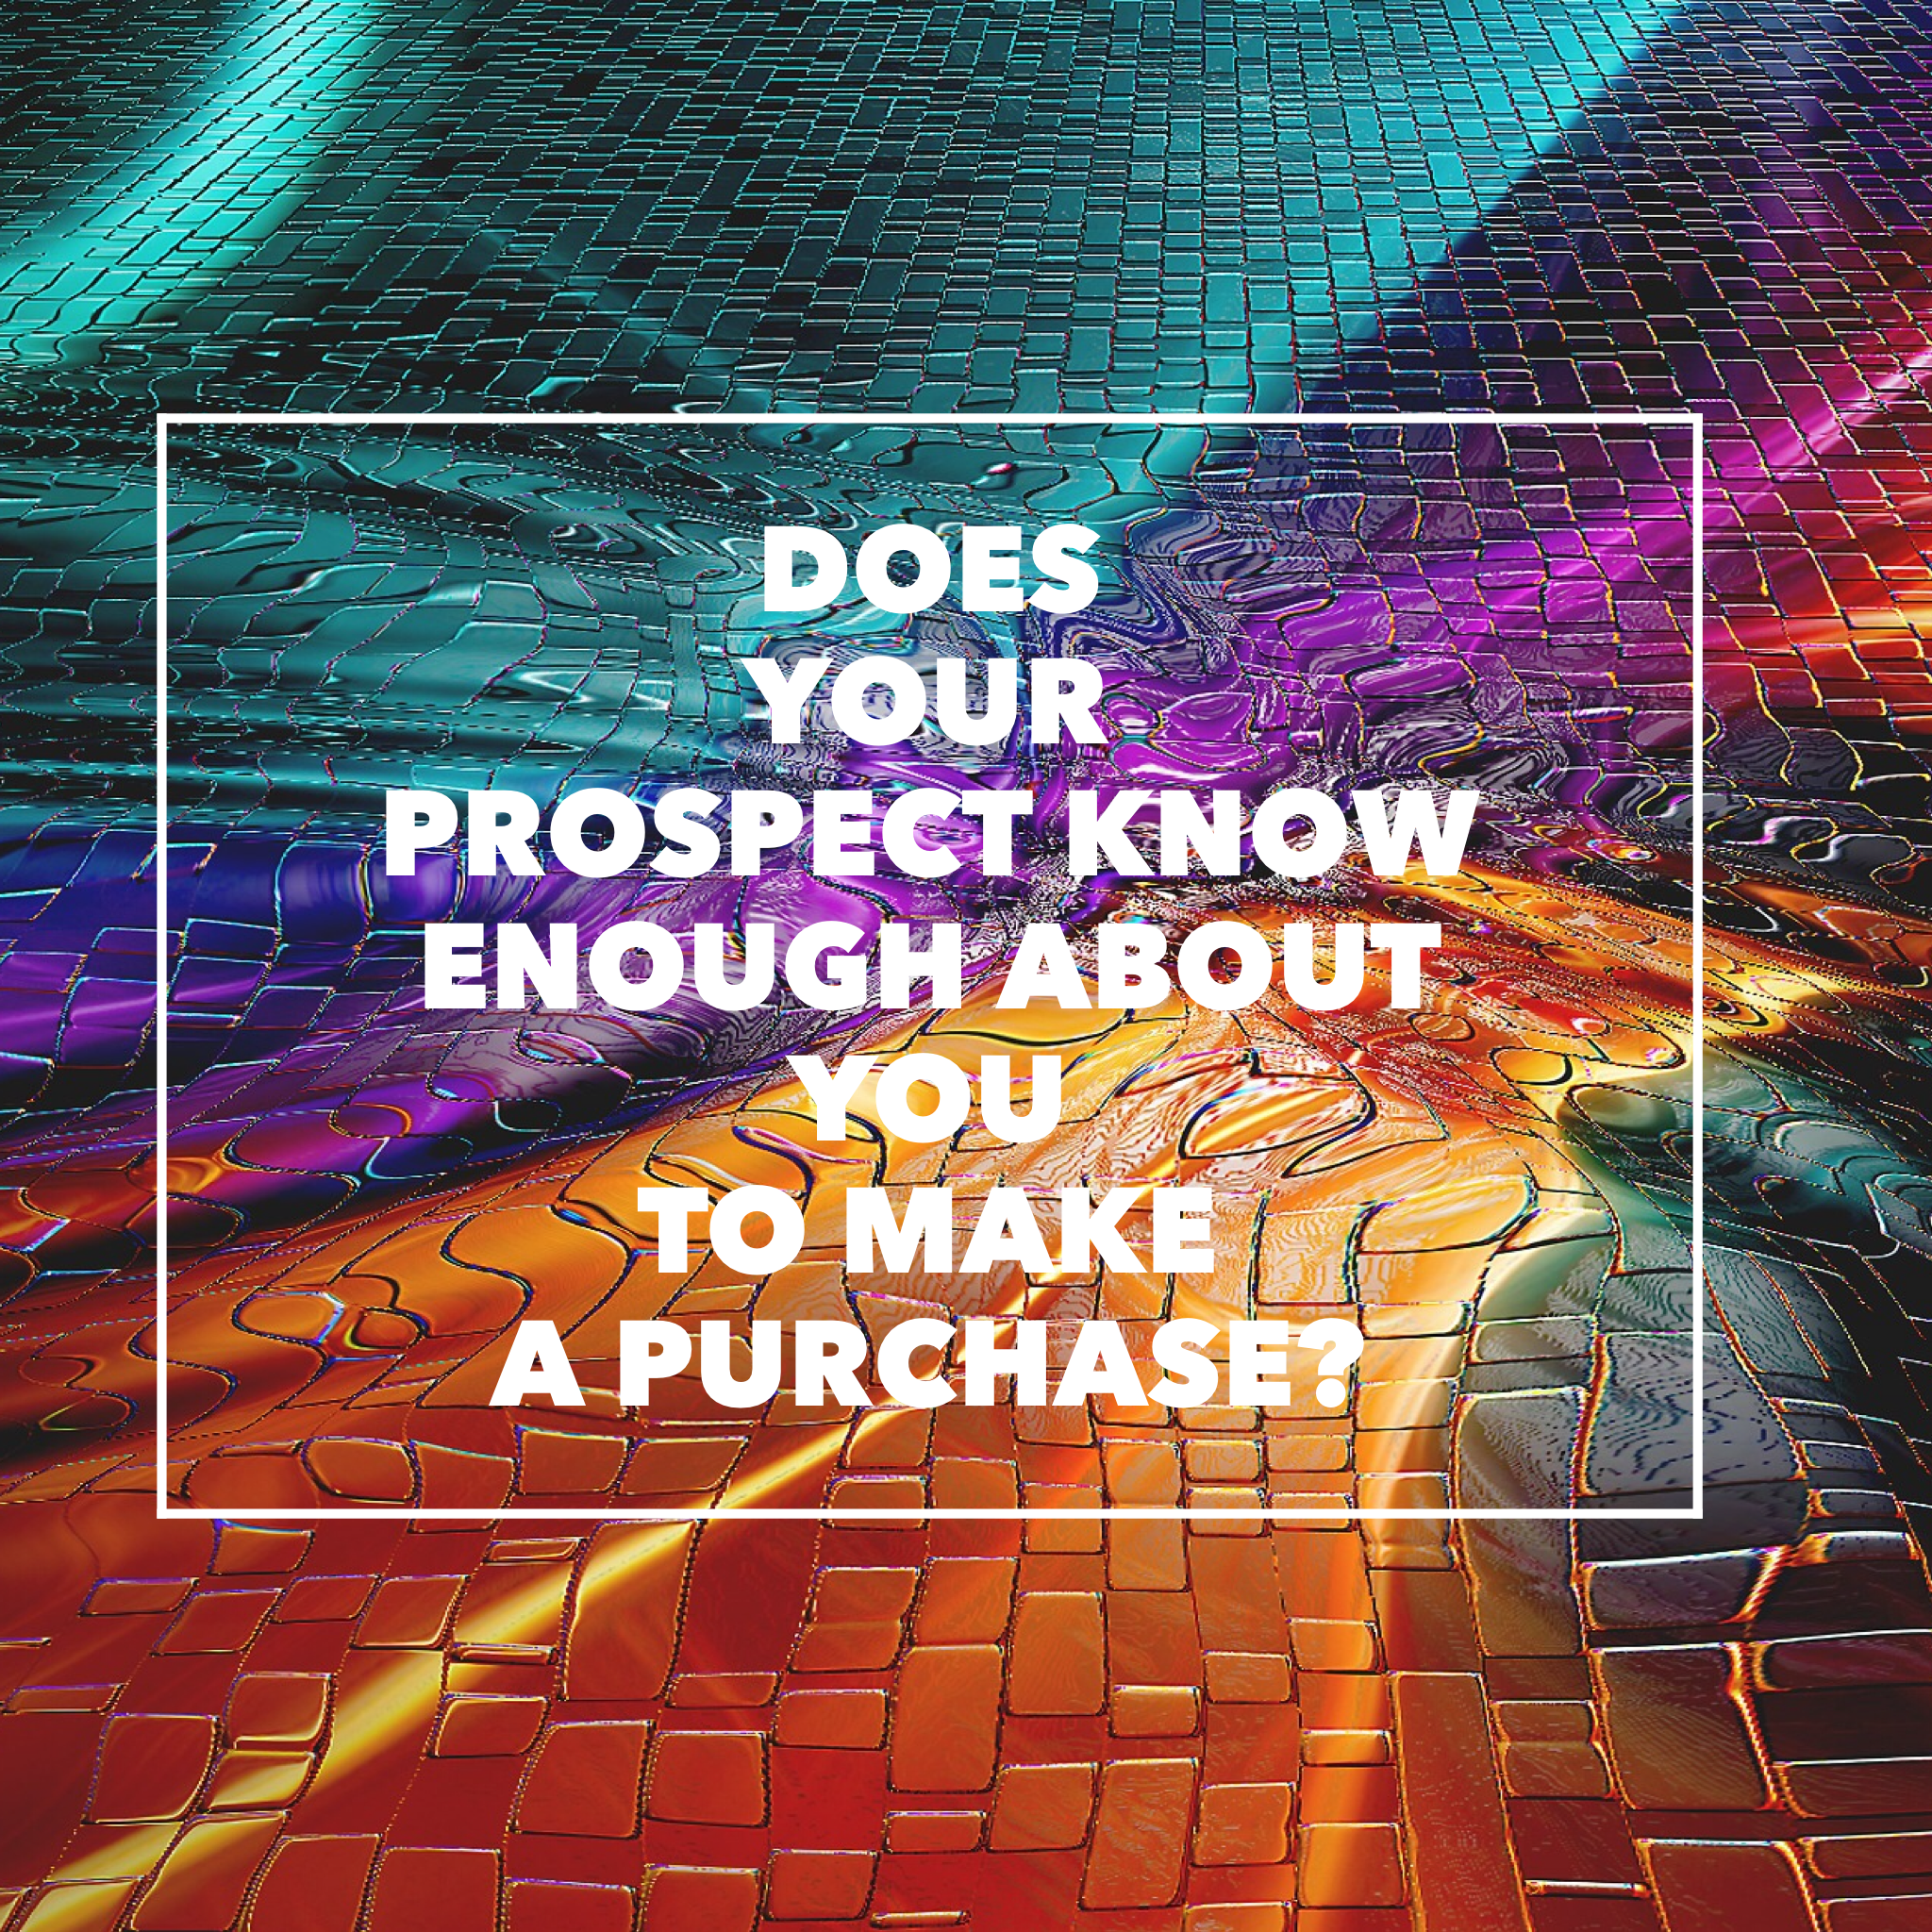 Does Your Prospect Know Enough About You to Make a Purchase?